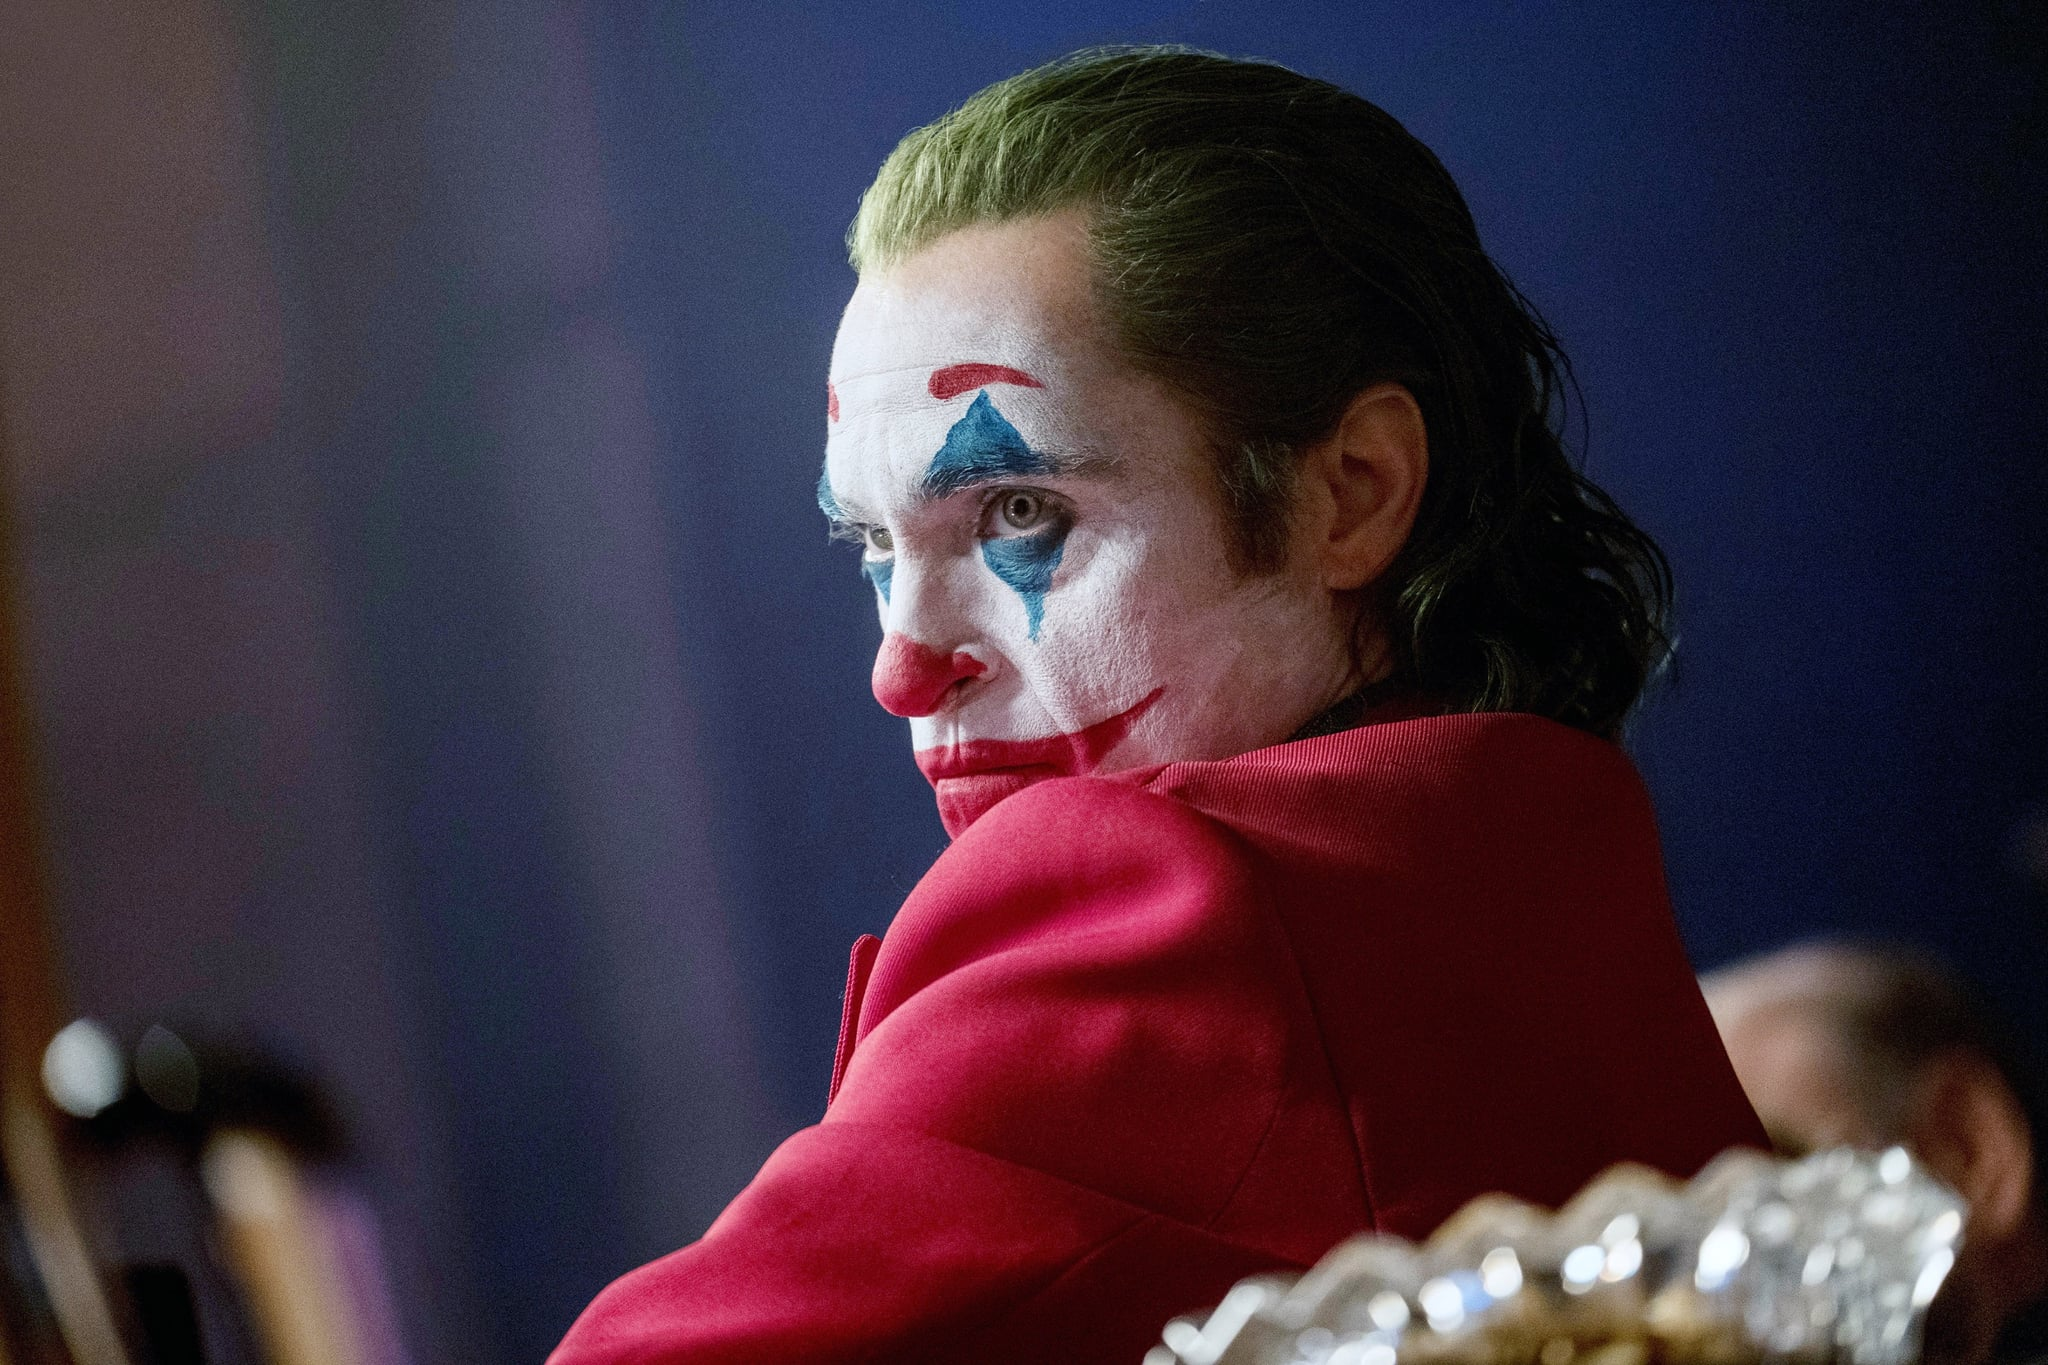 JOKER, Joaquin Phoenix as Arthur Fleck / Joker, 2019. ph: Niko Tavernise /  Warner Bros. / courtesy Everett Collection